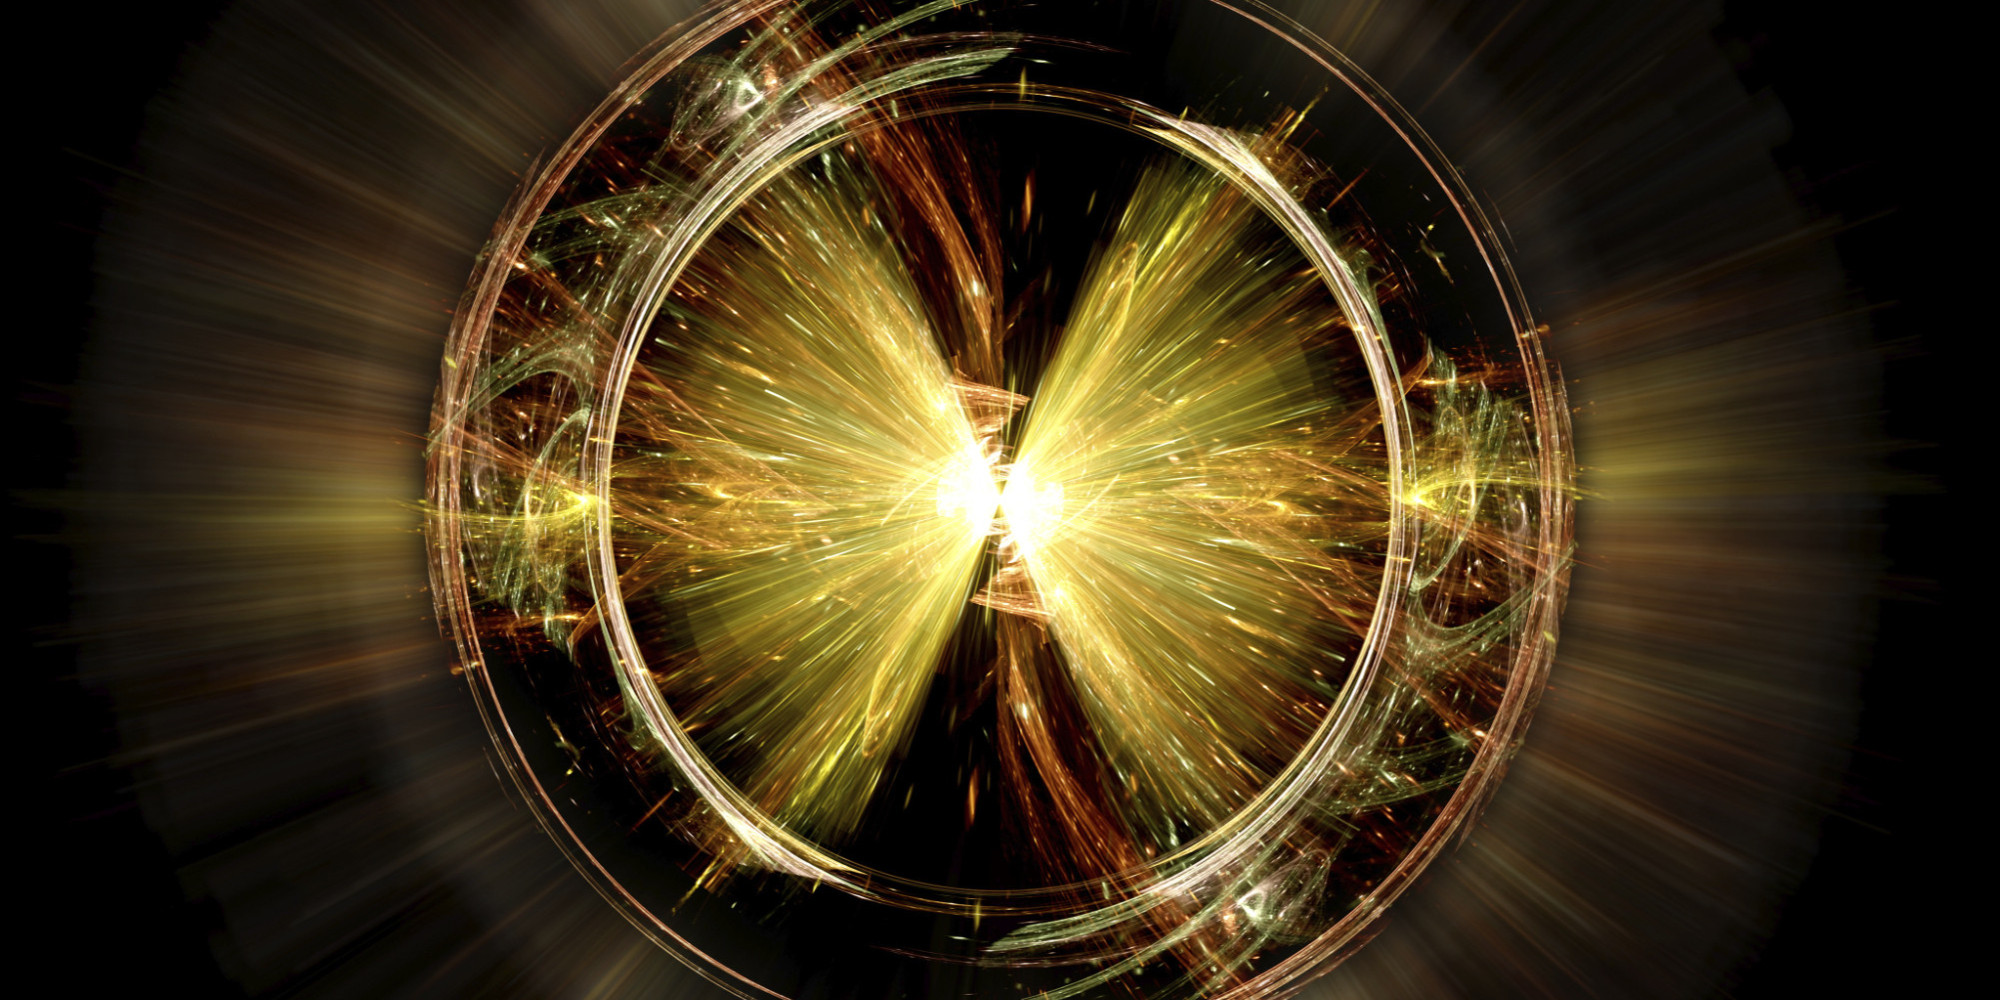 higgs boson : a elementary particle that has zero spin and large mass and that is required by some gauge theories to account for the masses of other elementary particles.